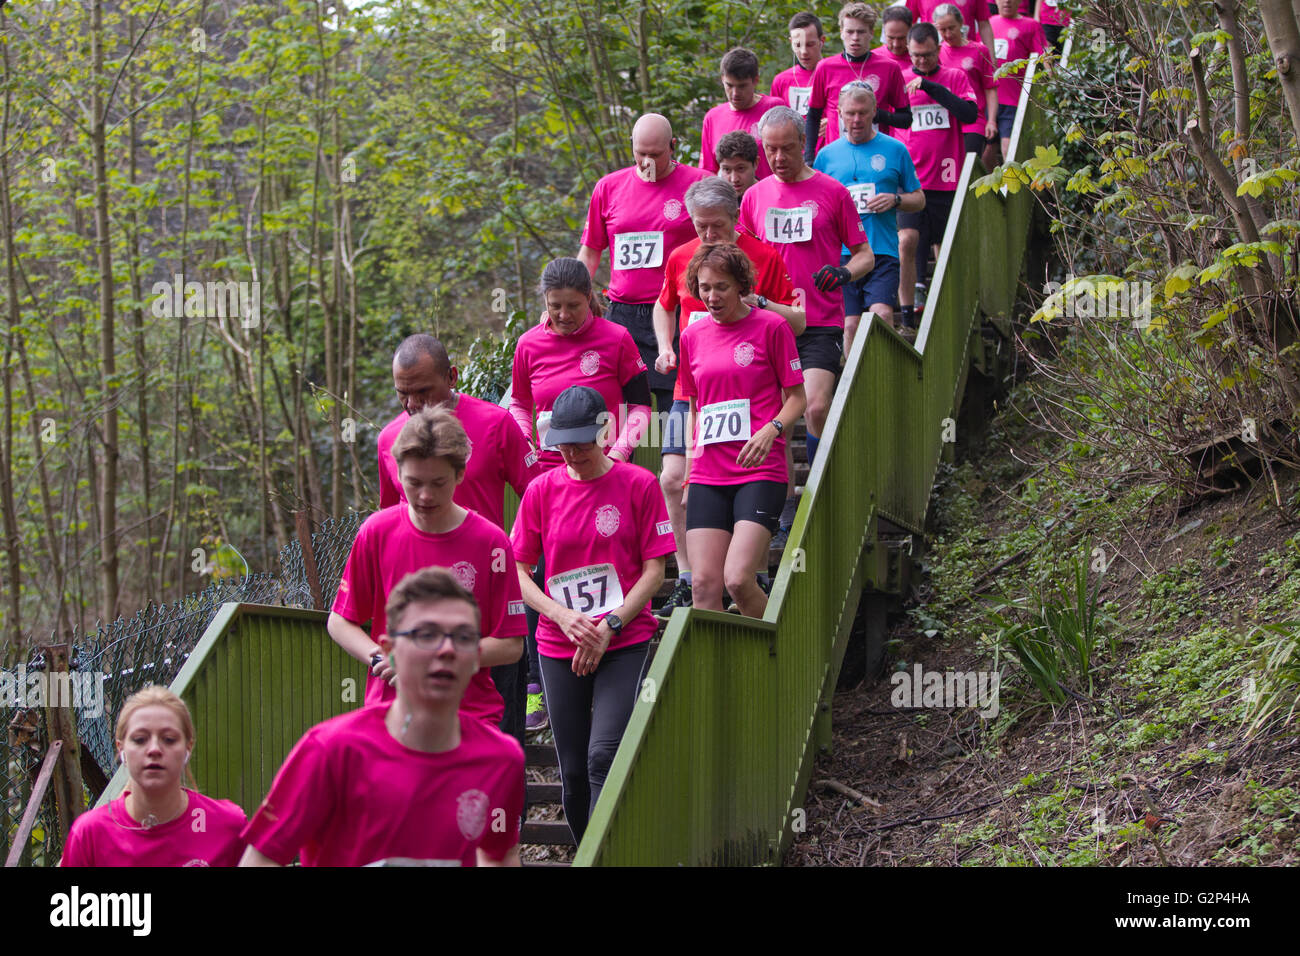 St Georges School Great Curry Run, Harpenden, Hertfordshire, England, UK - Stock Image